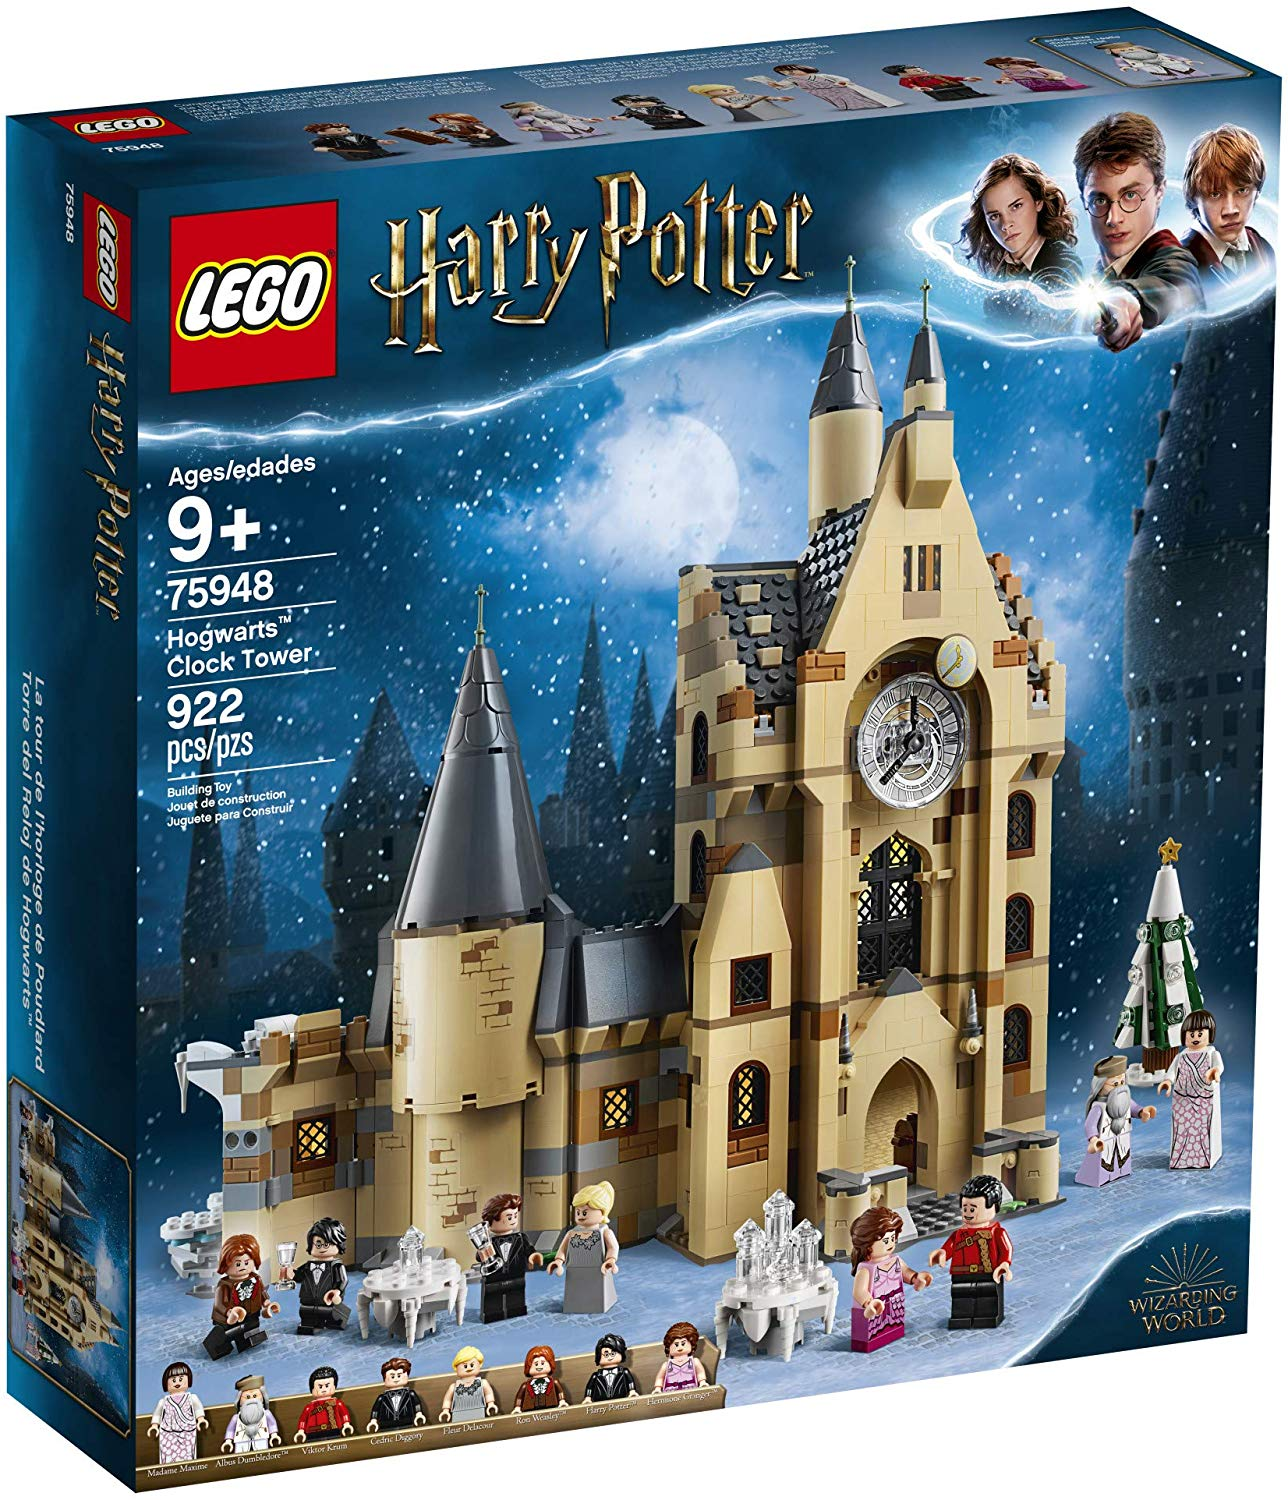 LEGO Harry Potter and The Goblet of Fire Hogwarts